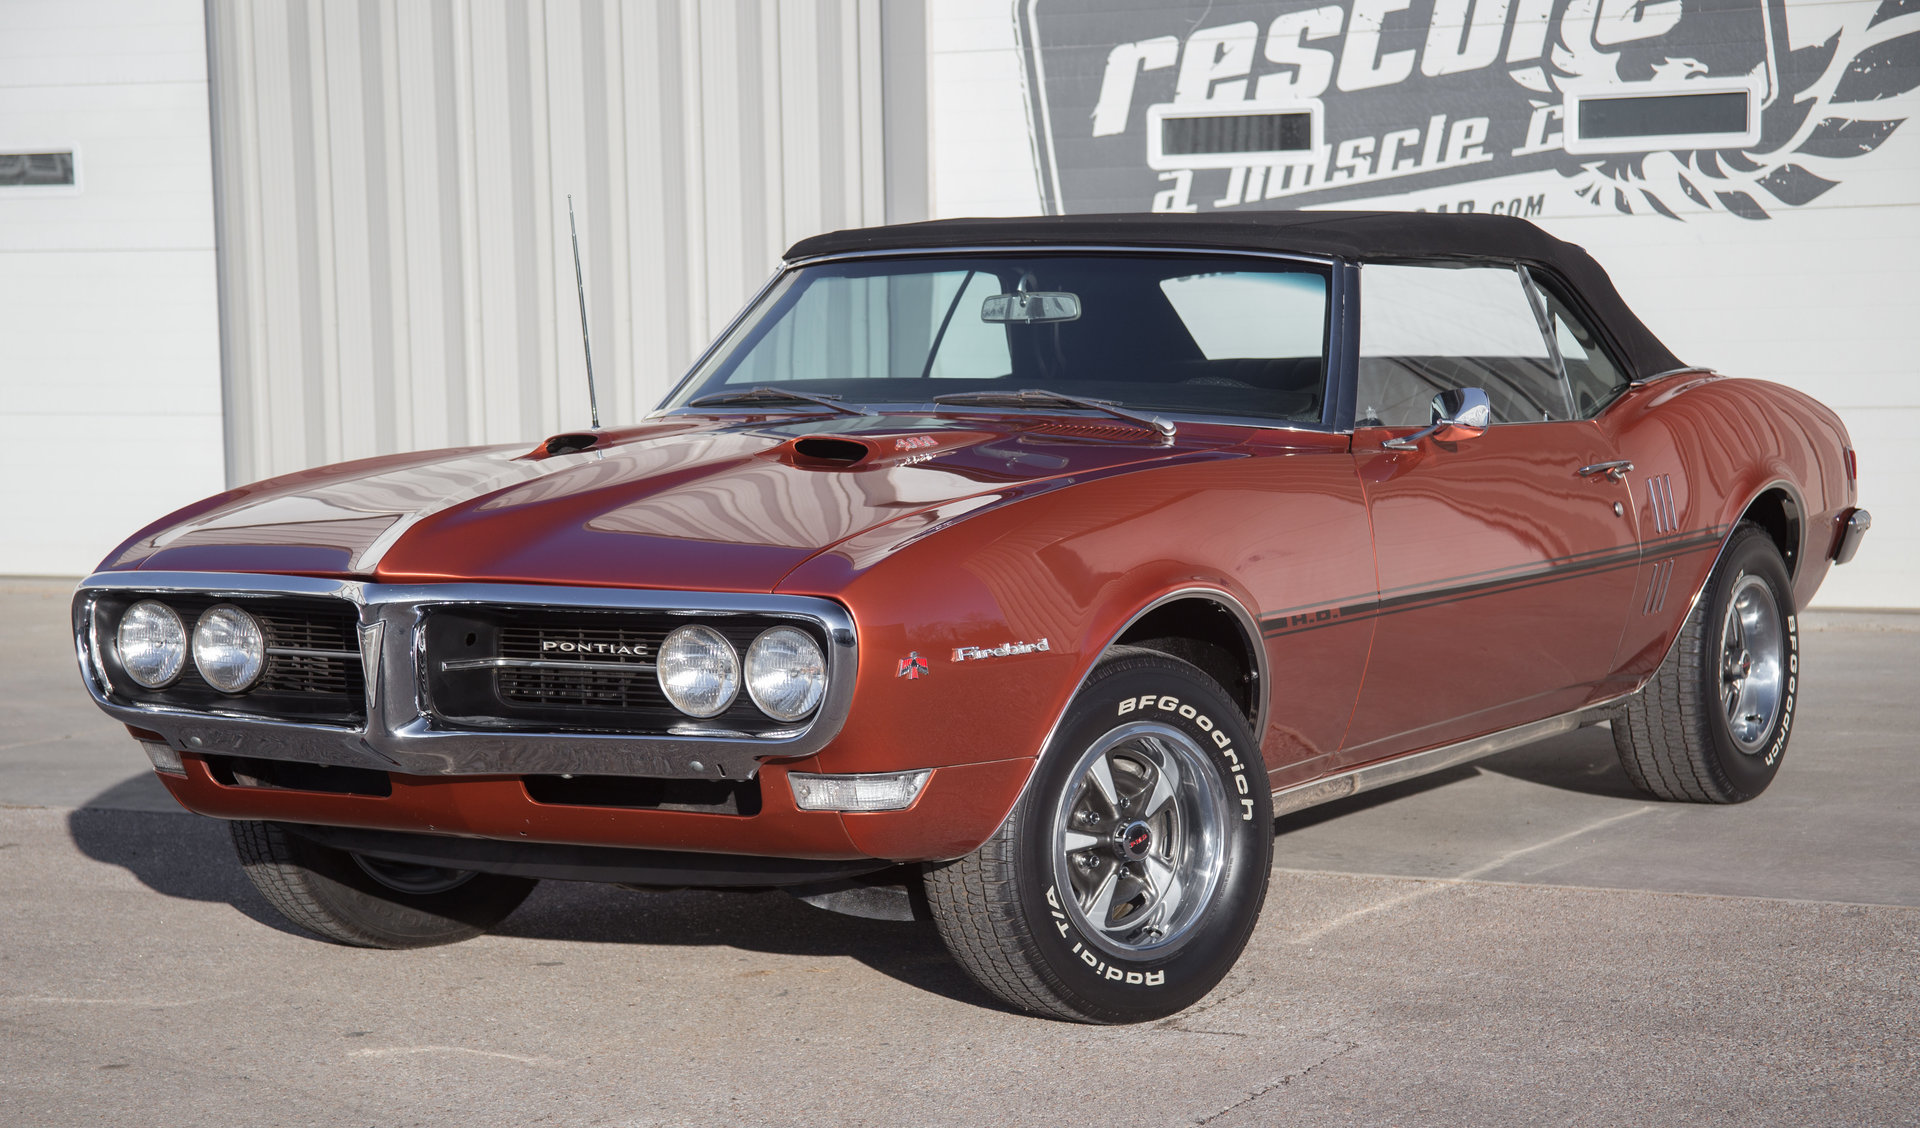 1968 Pontiac Firebird | Restore A Muscle Car™ LLC